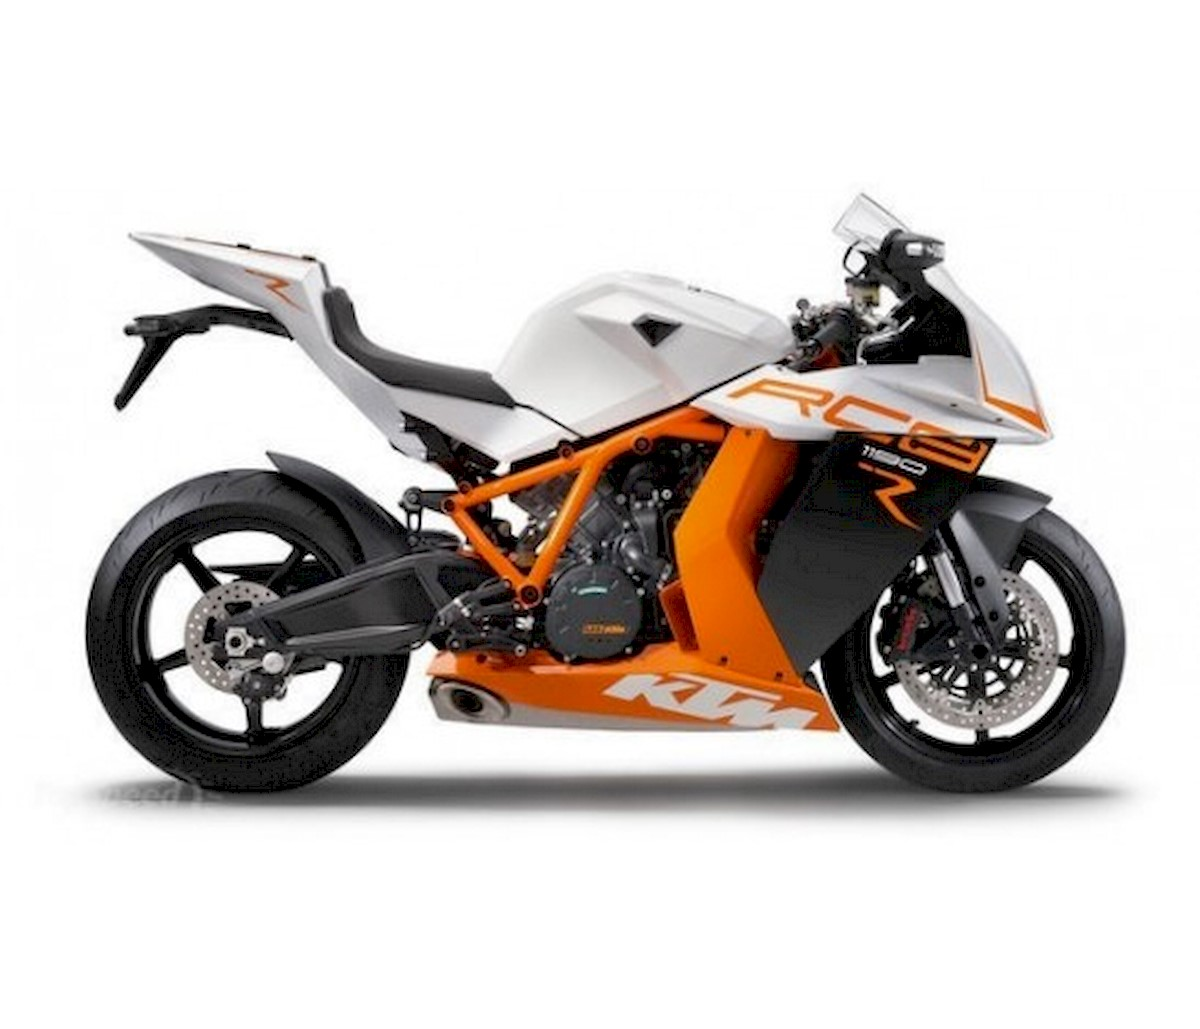 Image of KTM 1190 RC8